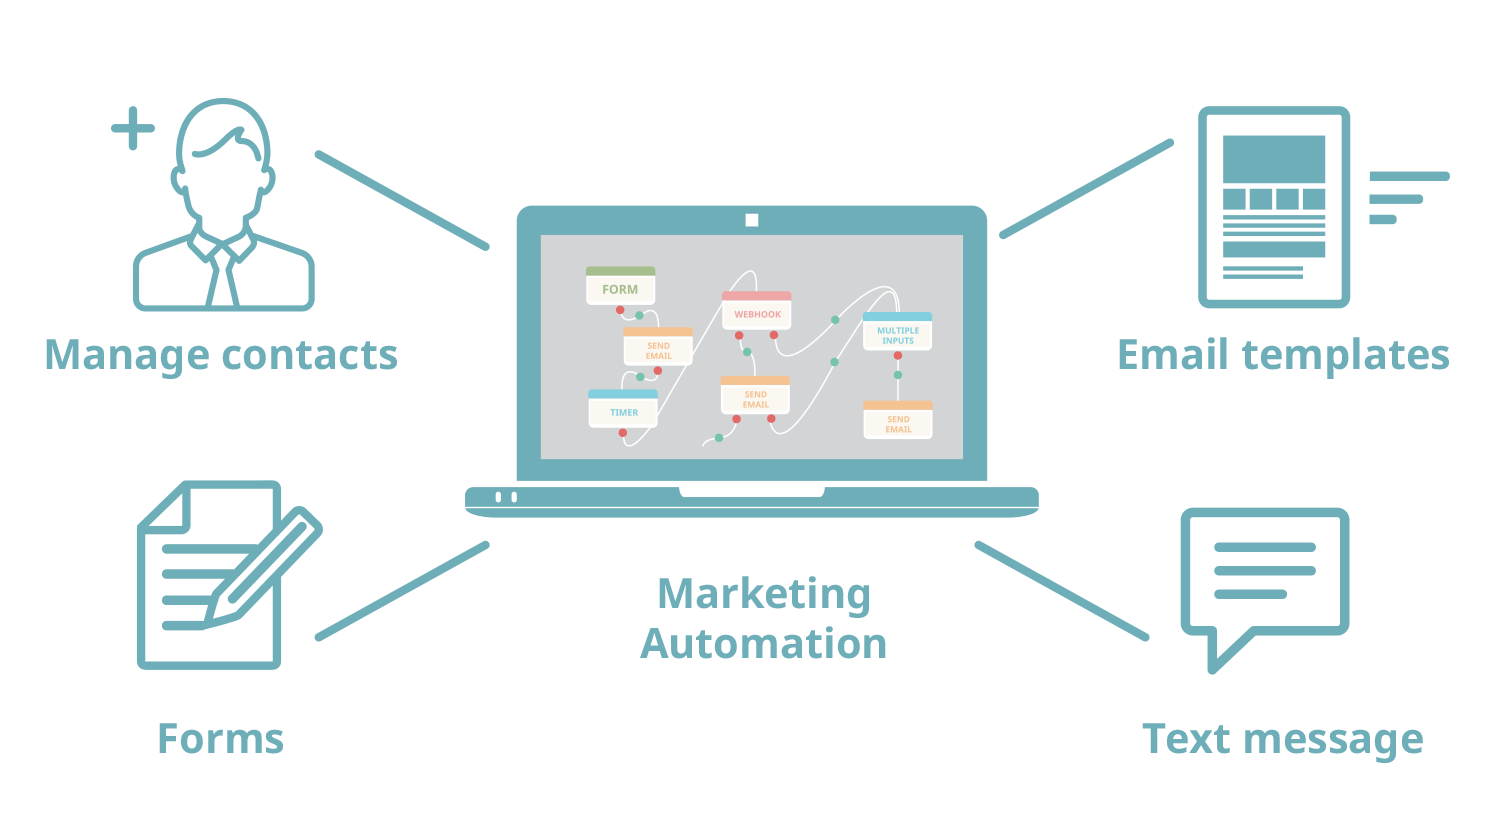 APSIS Marketing Automation: Evolve your customer experience